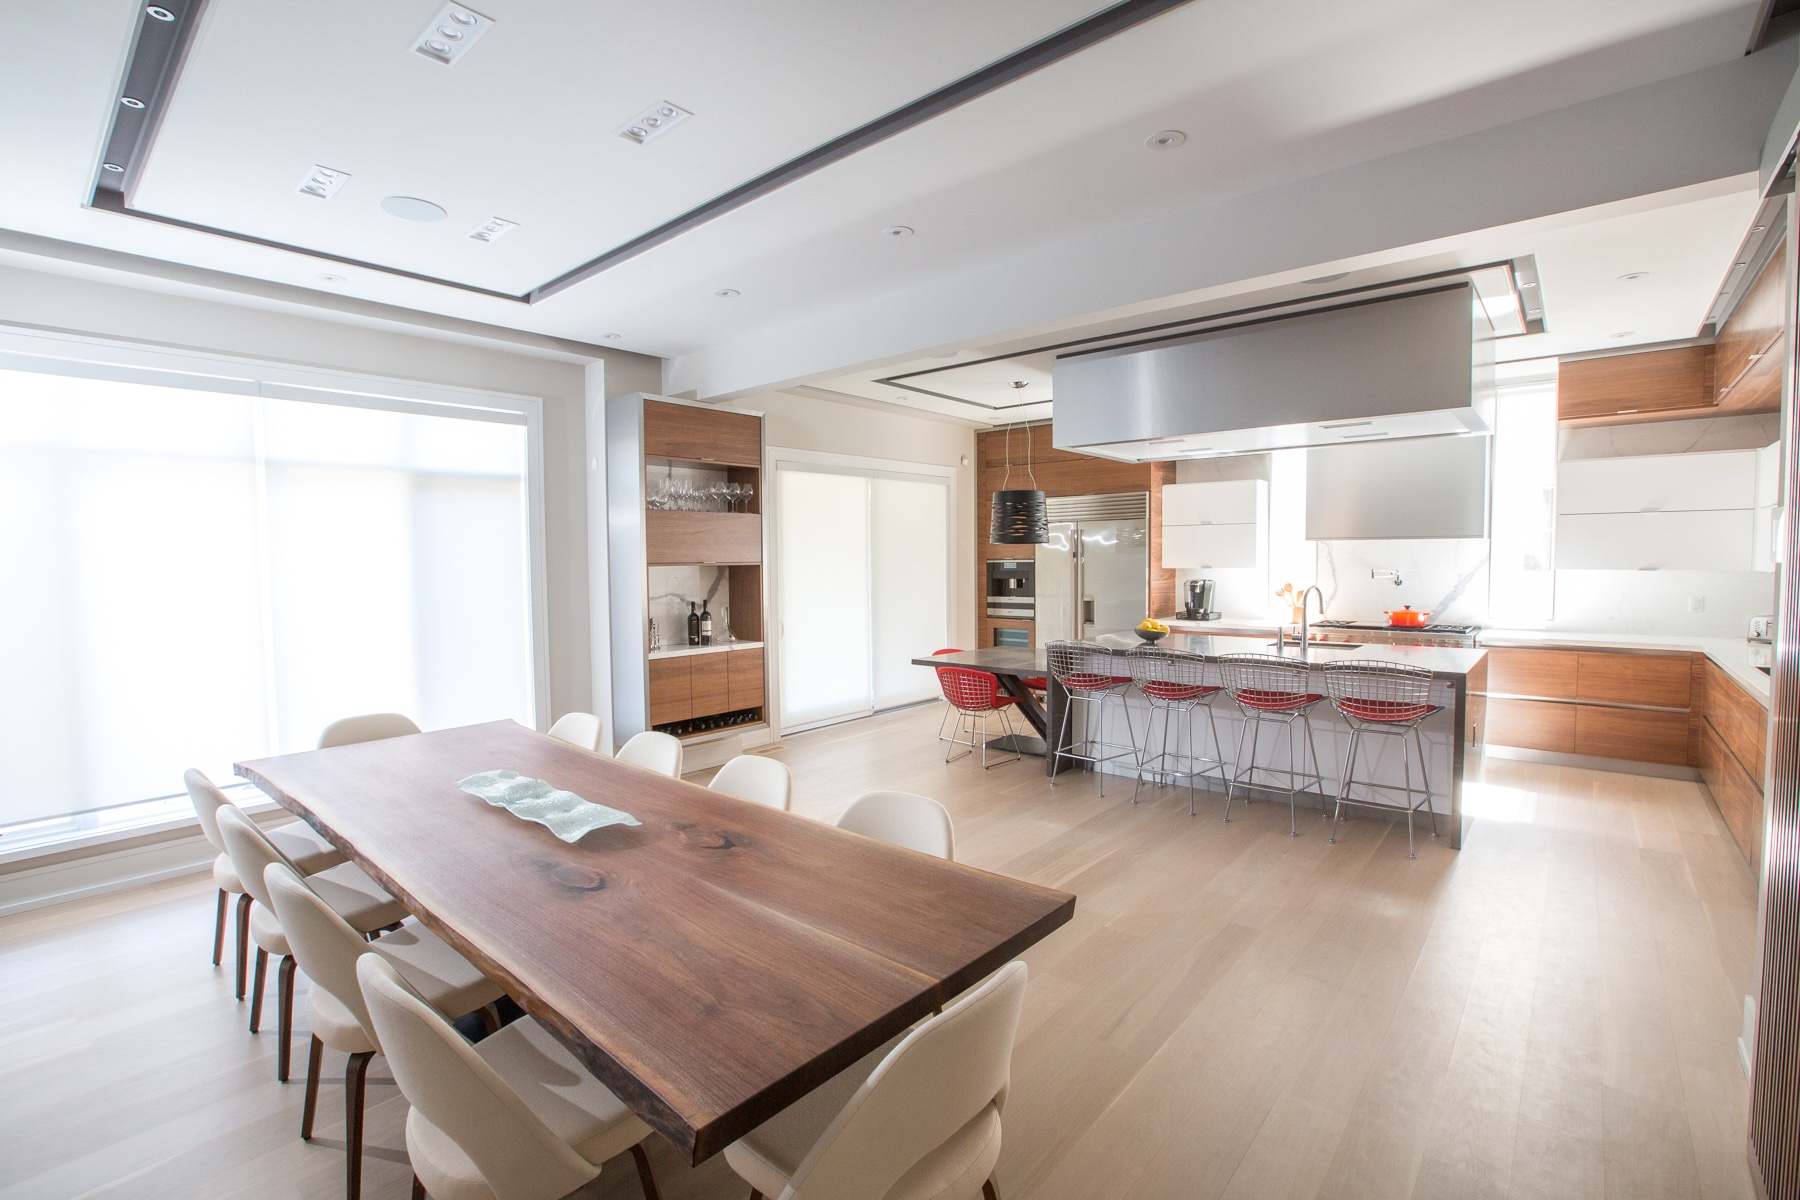 Wood dining table with kitchen in background